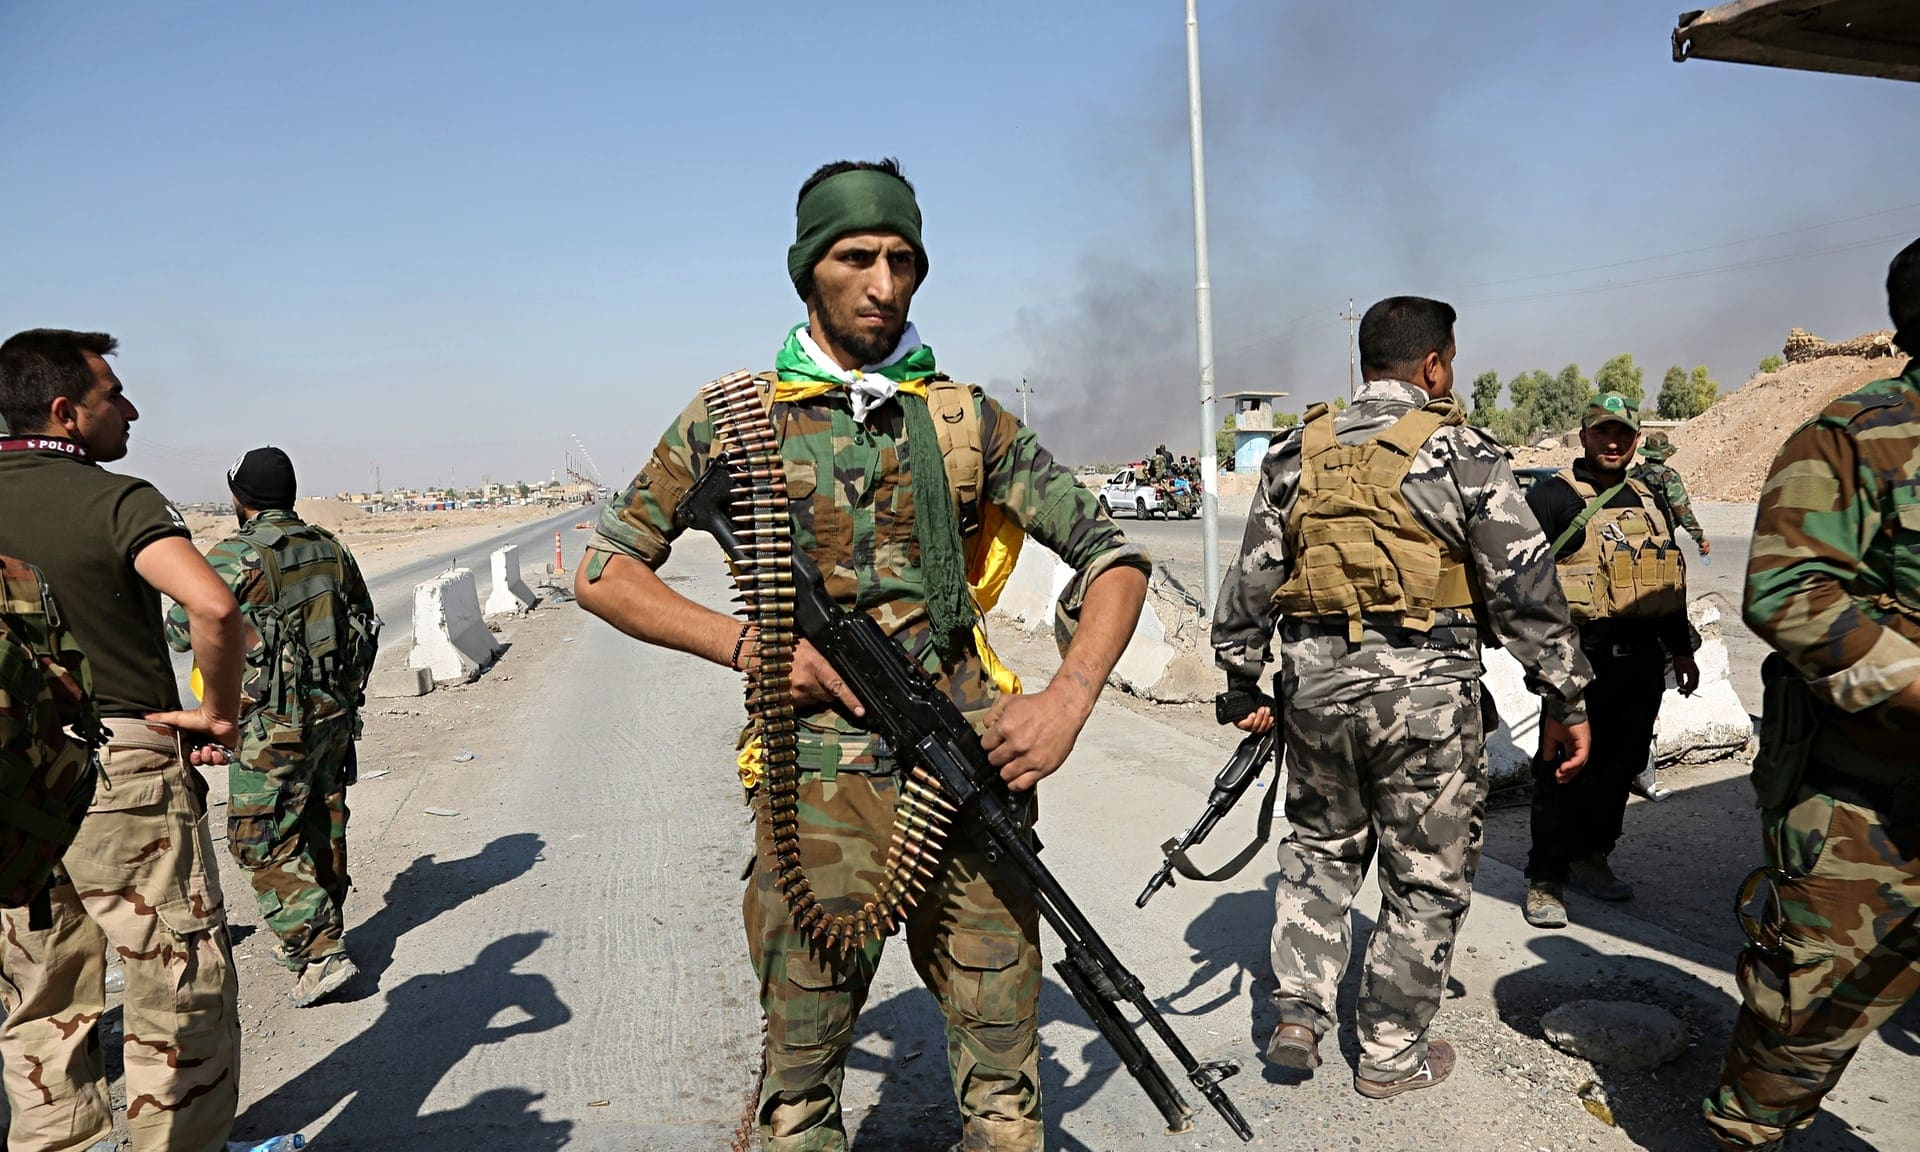 Kurdish battle positions Kurds as US ally against Iran